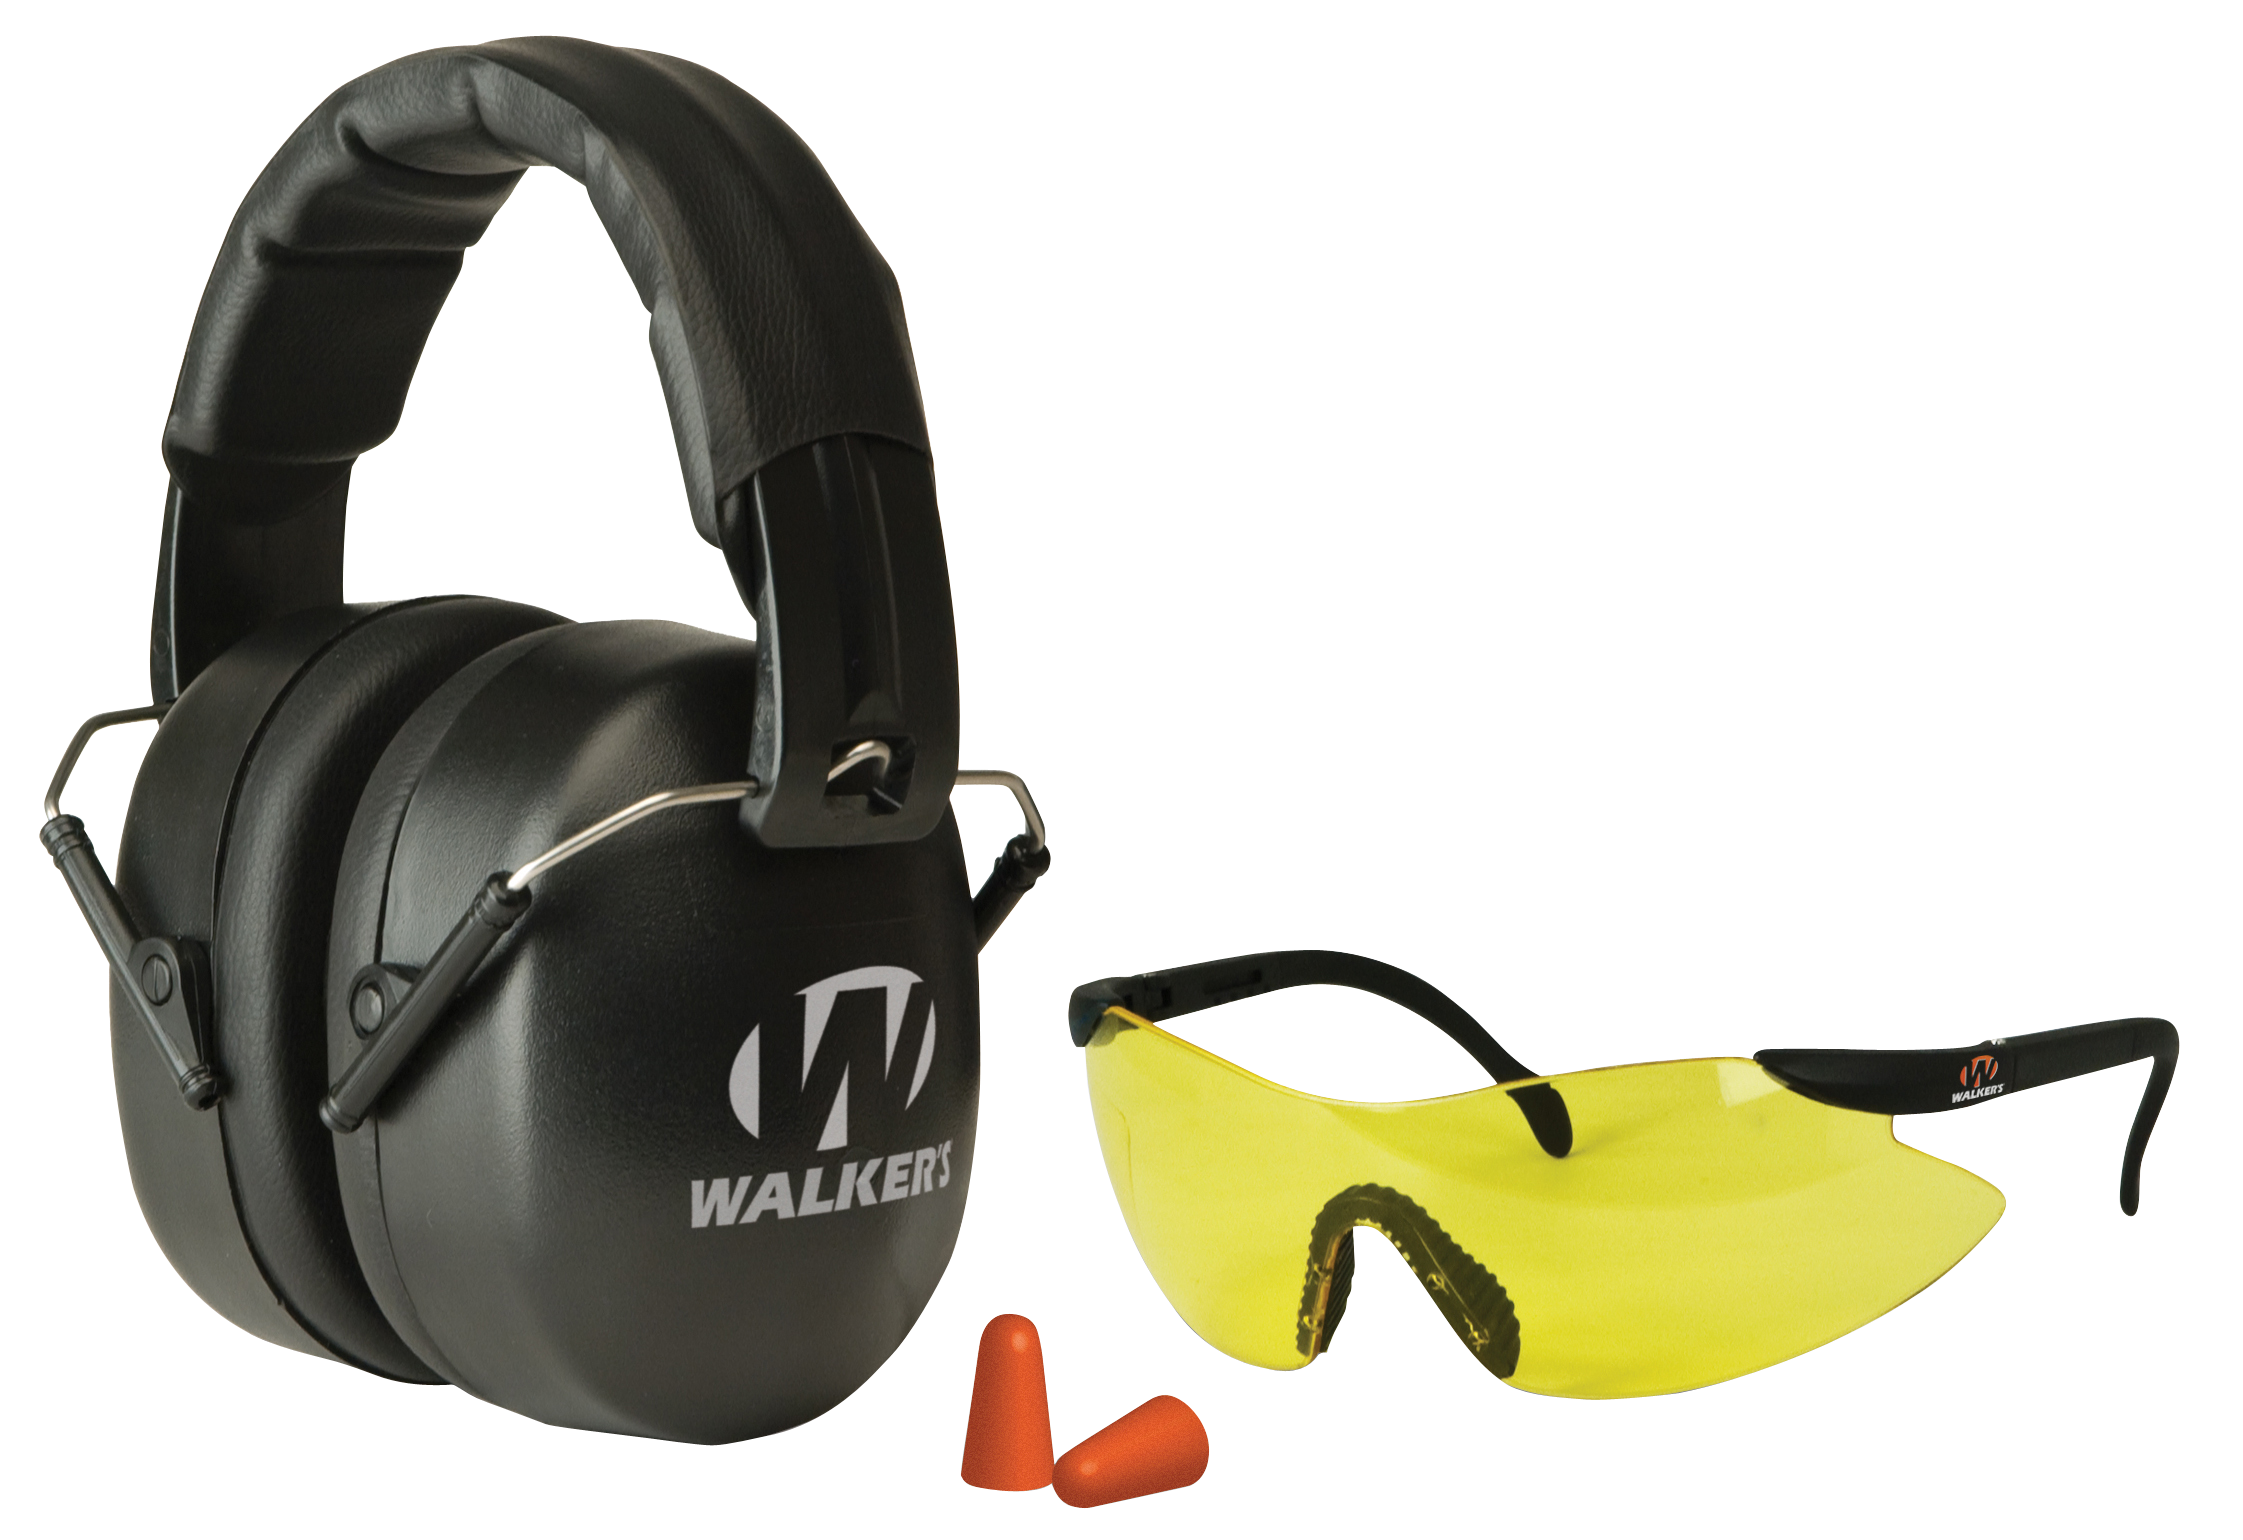 Walker's Passive EXT Safety Eye/Ear Combo NRR 34 Db Earmuffs - Yellow Lens Glasses